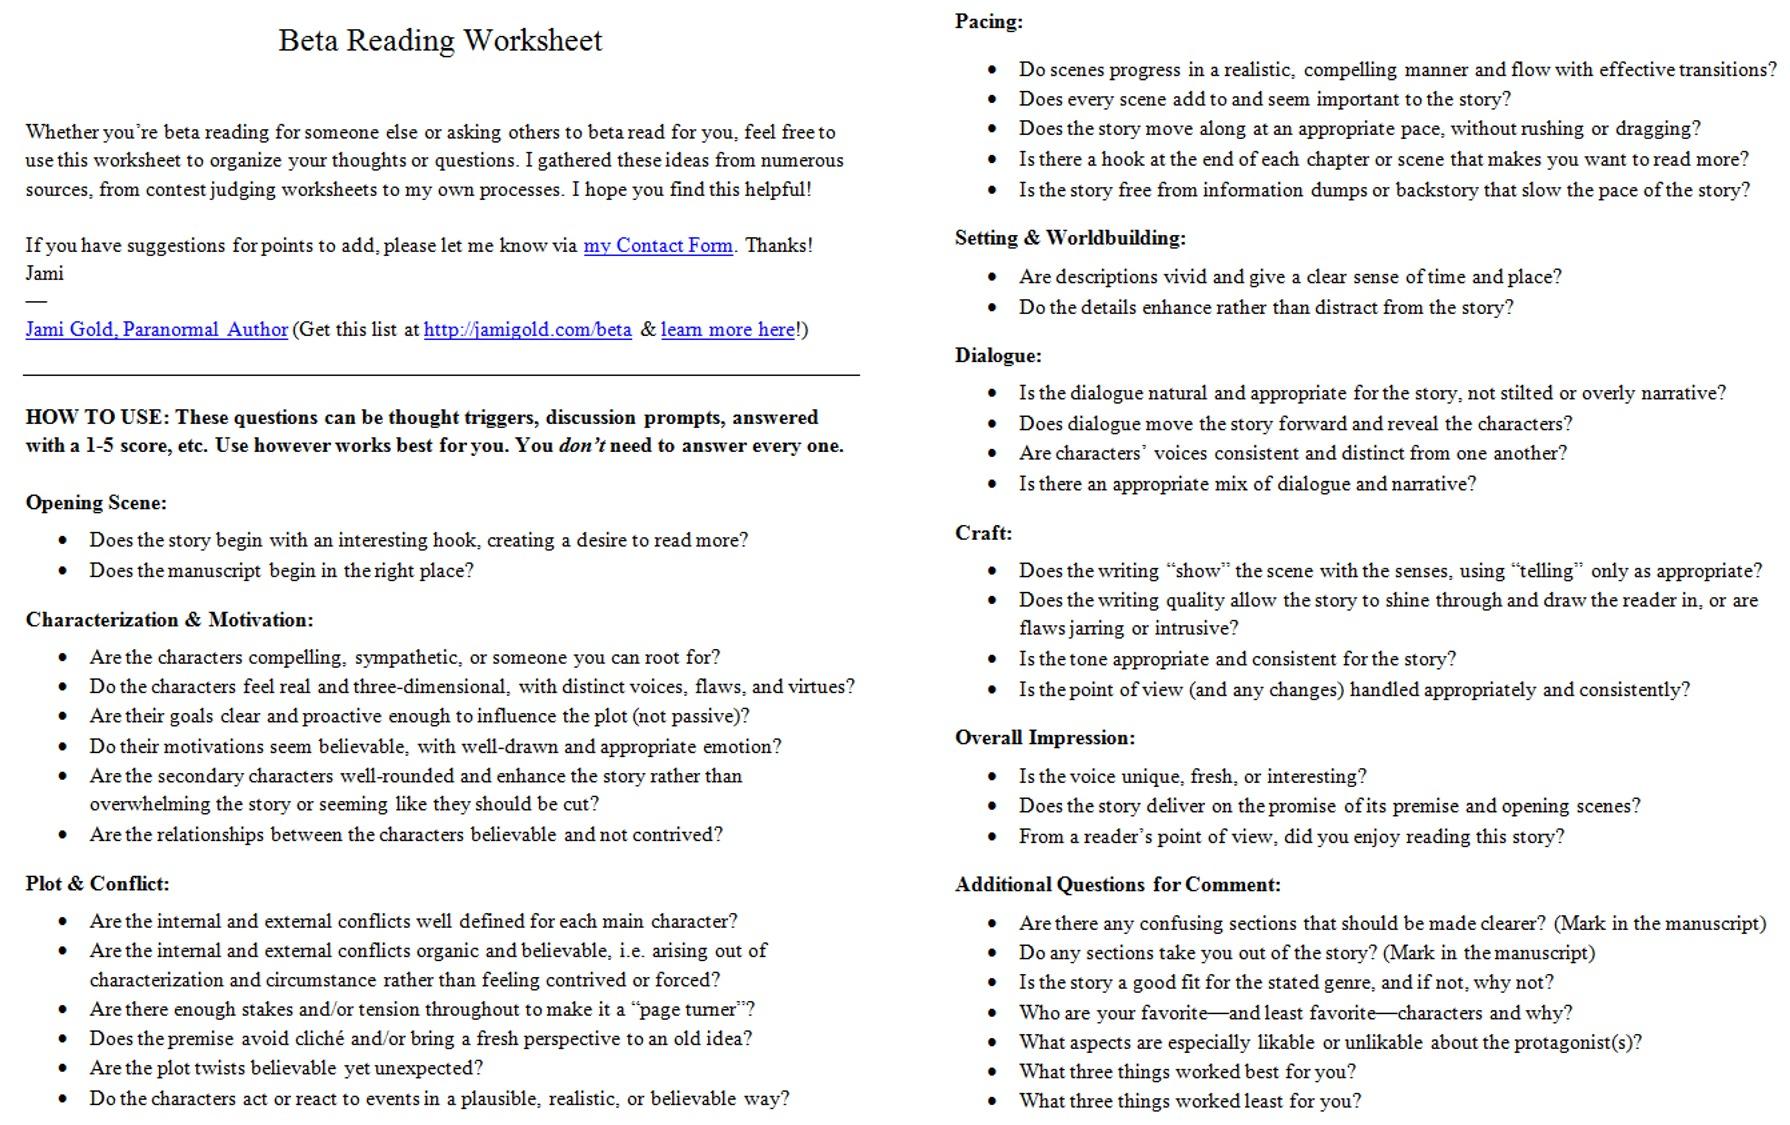 Aldiablosus  Winsome Worksheets For Writers  Jami Gold Paranormal Author With Gorgeous Screen Shot Of The Twopage Beta Reading Worksheet With Comely Consonant Blends And Digraphs Worksheets Also Collective Nouns Worksheet For Grade  In Addition Metaphor Worksheet High School And Math Worksheets Combining Like Terms As Well As Budget Worksheet Free Printable Additionally Free Division Worksheet From Jamigoldcom With Aldiablosus  Gorgeous Worksheets For Writers  Jami Gold Paranormal Author With Comely Screen Shot Of The Twopage Beta Reading Worksheet And Winsome Consonant Blends And Digraphs Worksheets Also Collective Nouns Worksheet For Grade  In Addition Metaphor Worksheet High School From Jamigoldcom